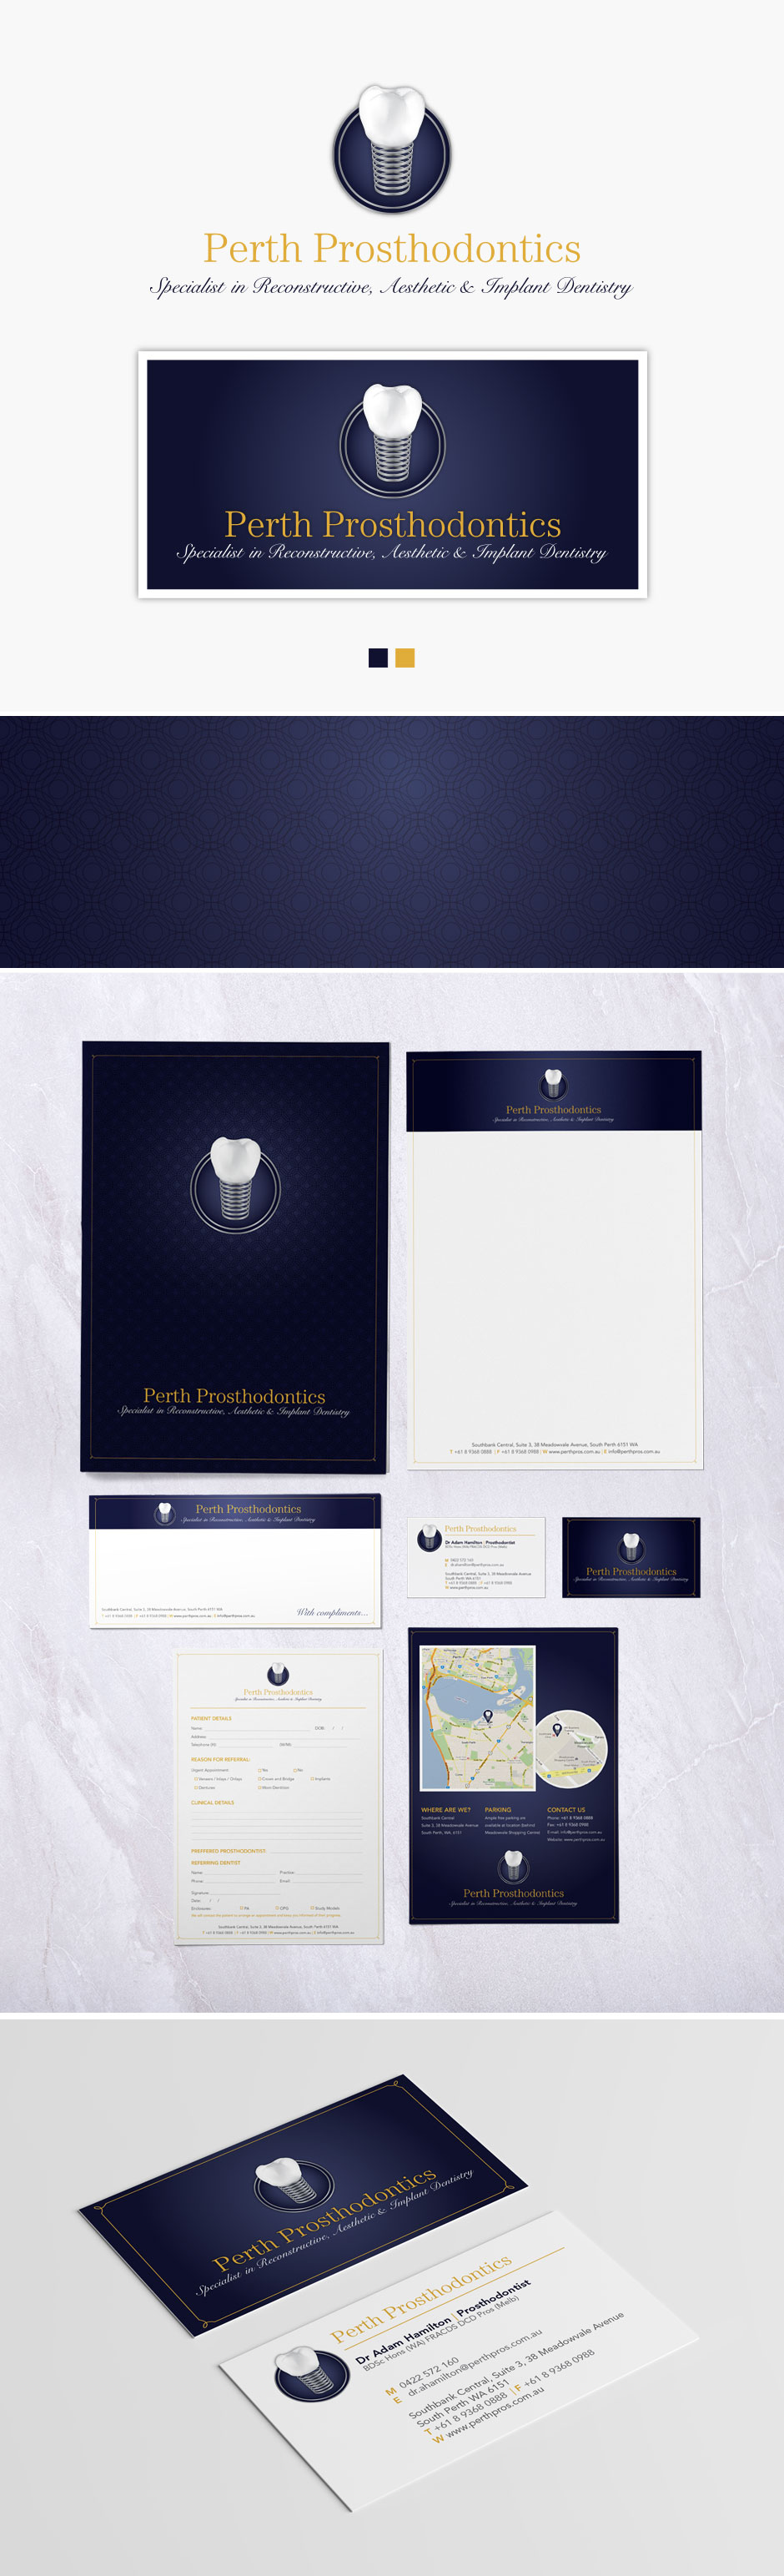 Perth Prosthodontics | Logo, Stationary, Branding | Tickled Pink Confetti | by Veronika Kahrmadji